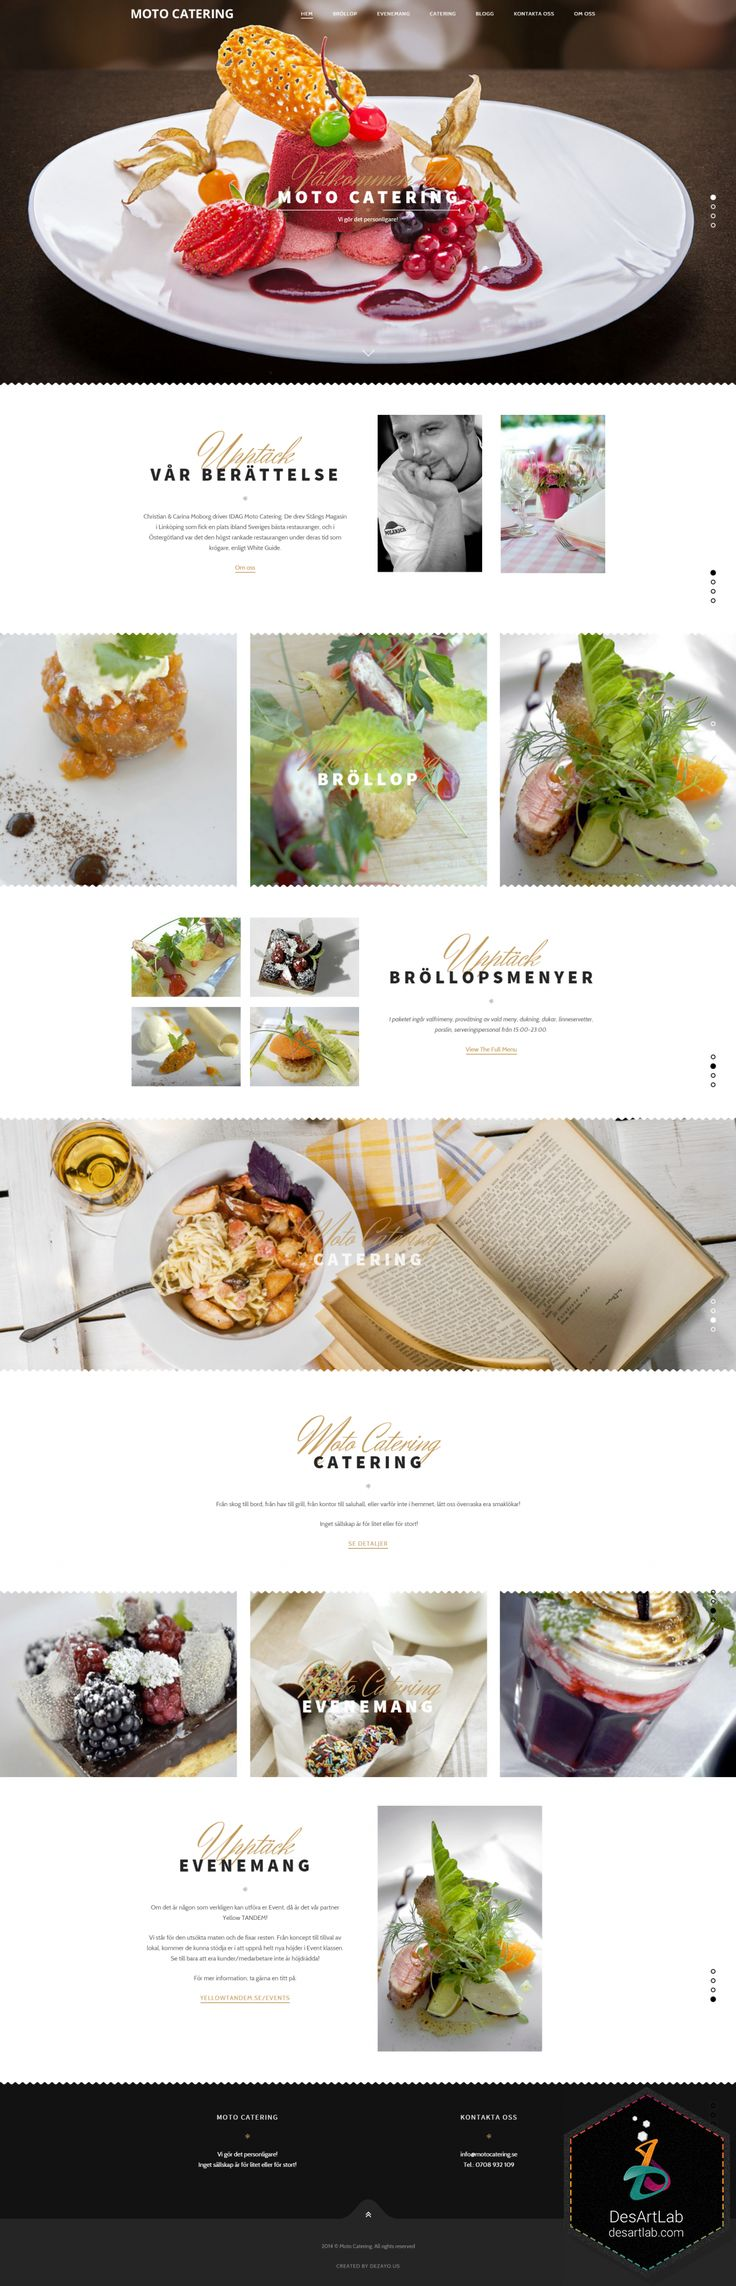 One Page Website Design Inspirational - Moto Catering. A turnkey business card website for Swedish catering company. The main requirements were for the website to be modern-looking, to possess intuitive UI and overall elegant design. #UI #sitedesign